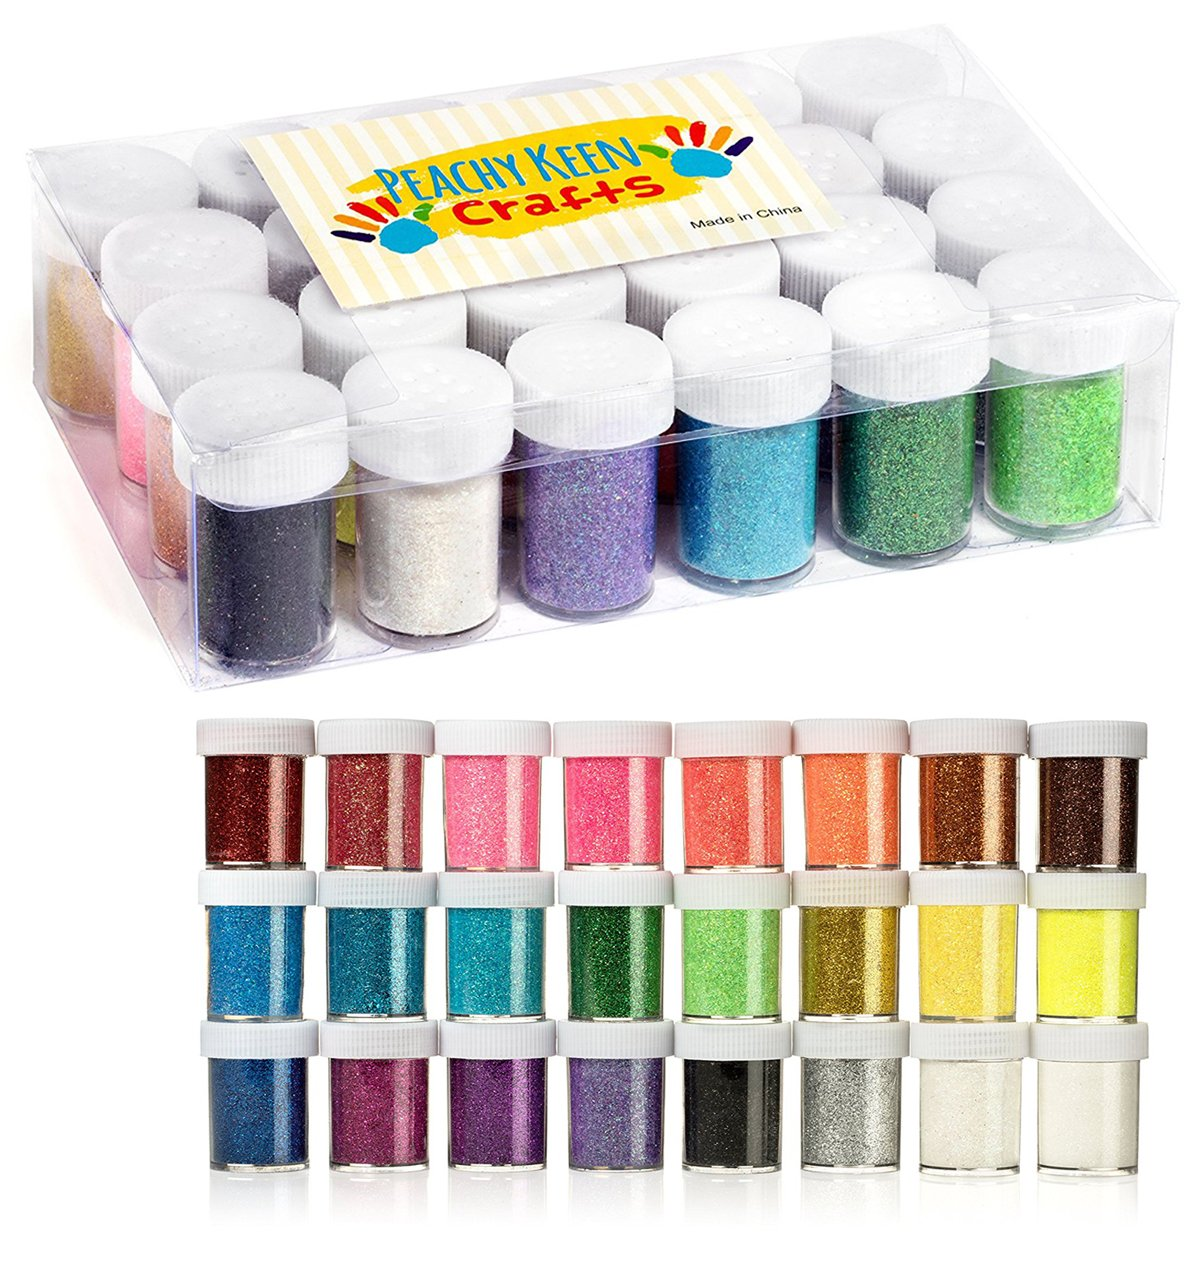 24 Pack Glitter Powder - Brightly Colored Loose Dust - Kids Fine Glitter Pack Shake Jars - Perfect for Holiday Crafting Maad Brands